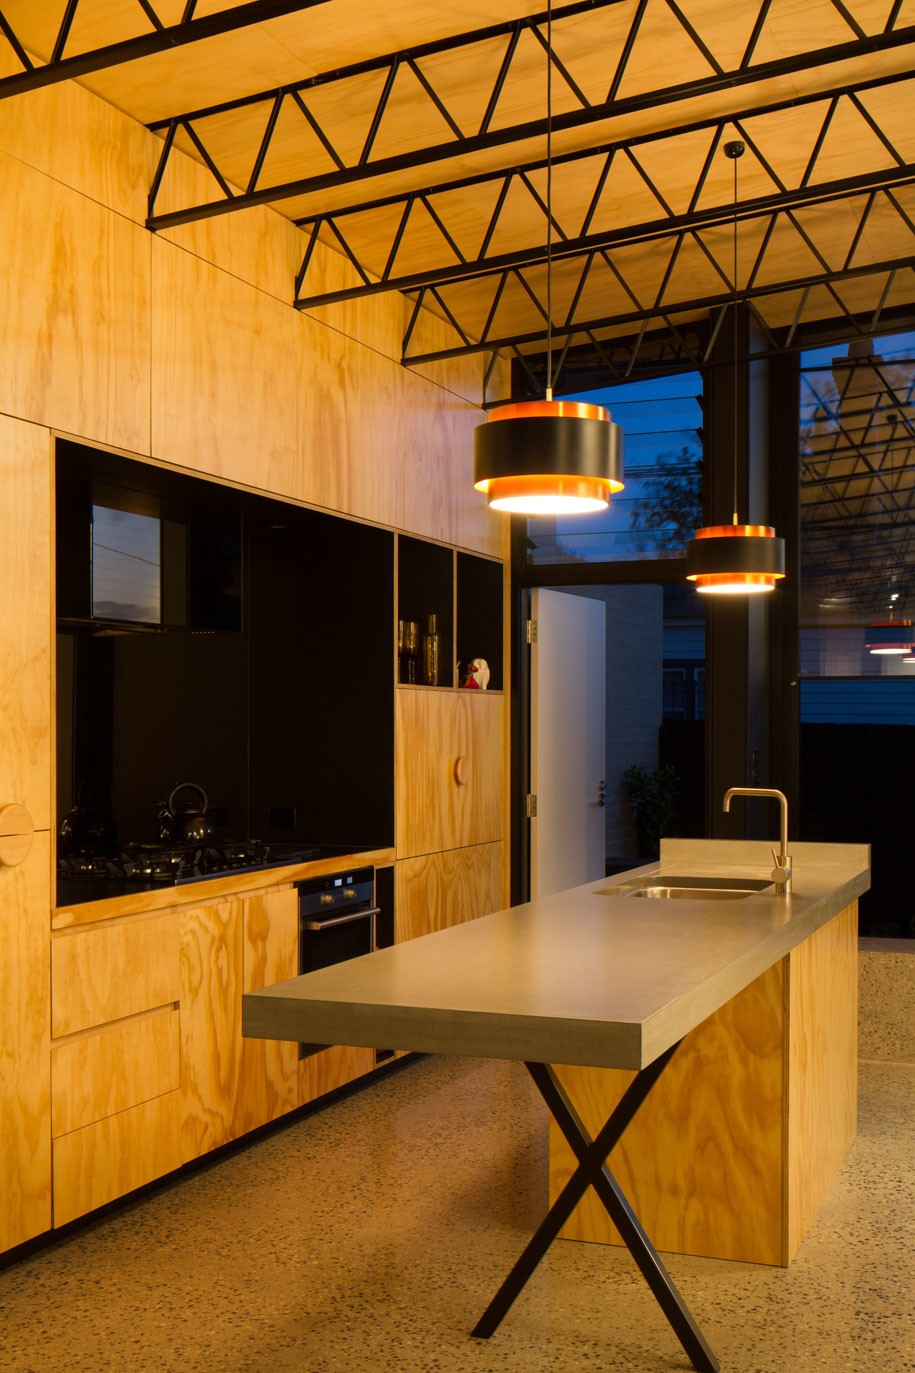 11 Ways With Plywood For Every Room And Application